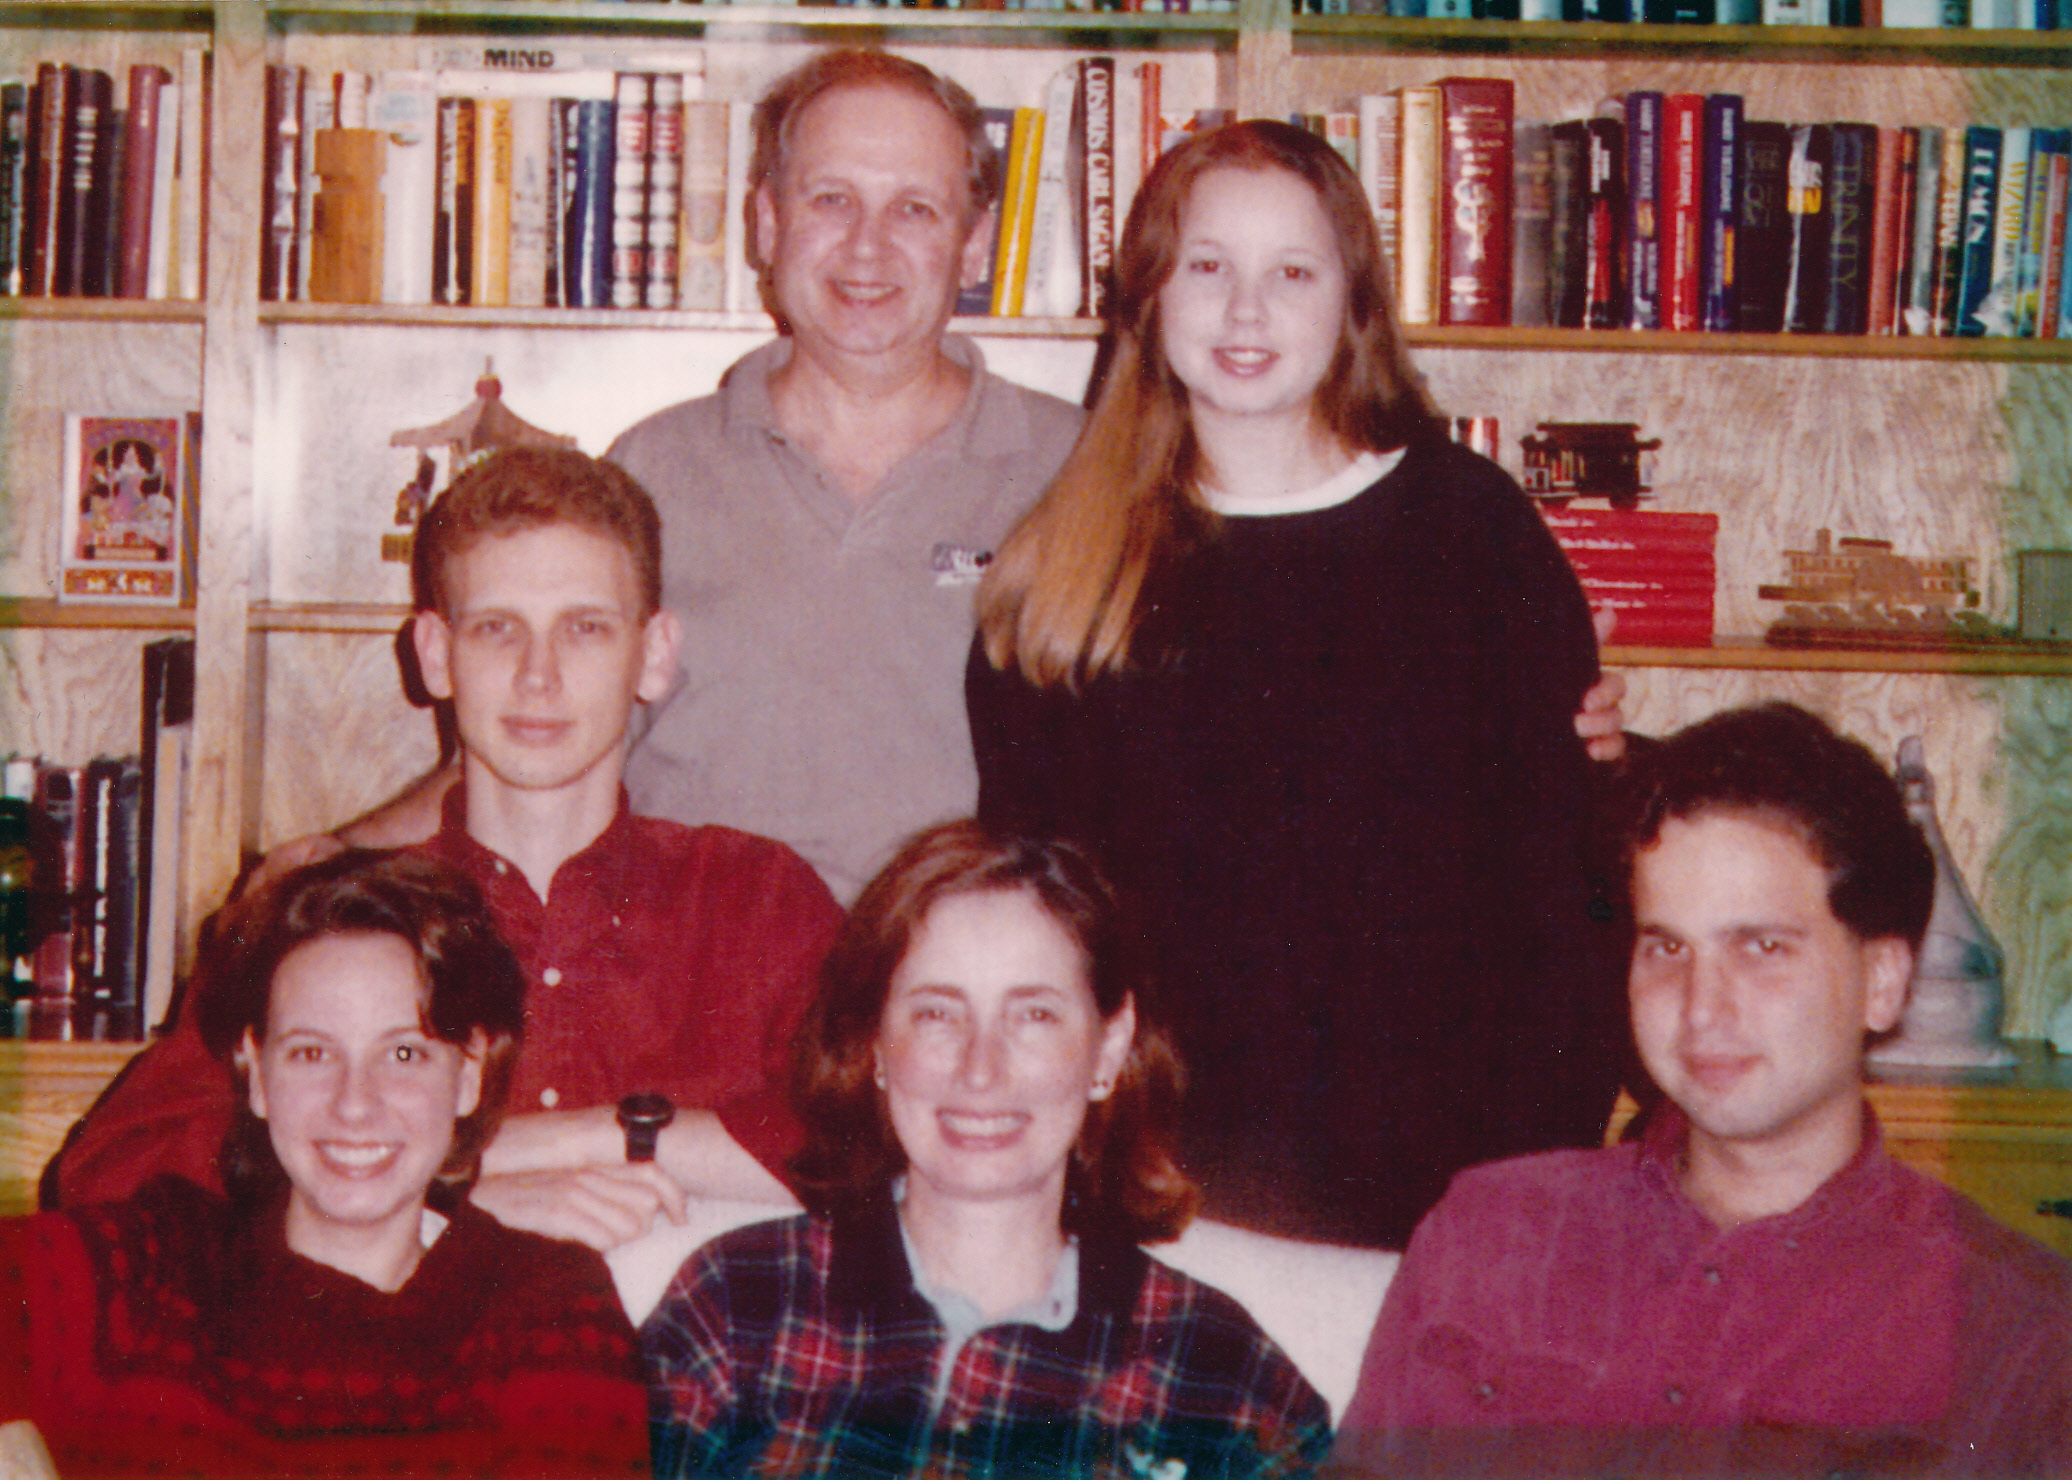 Thanksgiving 1994. (L-R) Back row: Rob Mayoff, Bernie Mayoff, Cheryl Mayoff. Sitting: Beth Mayoff, Denise Mayoff, Jeff Mayoff